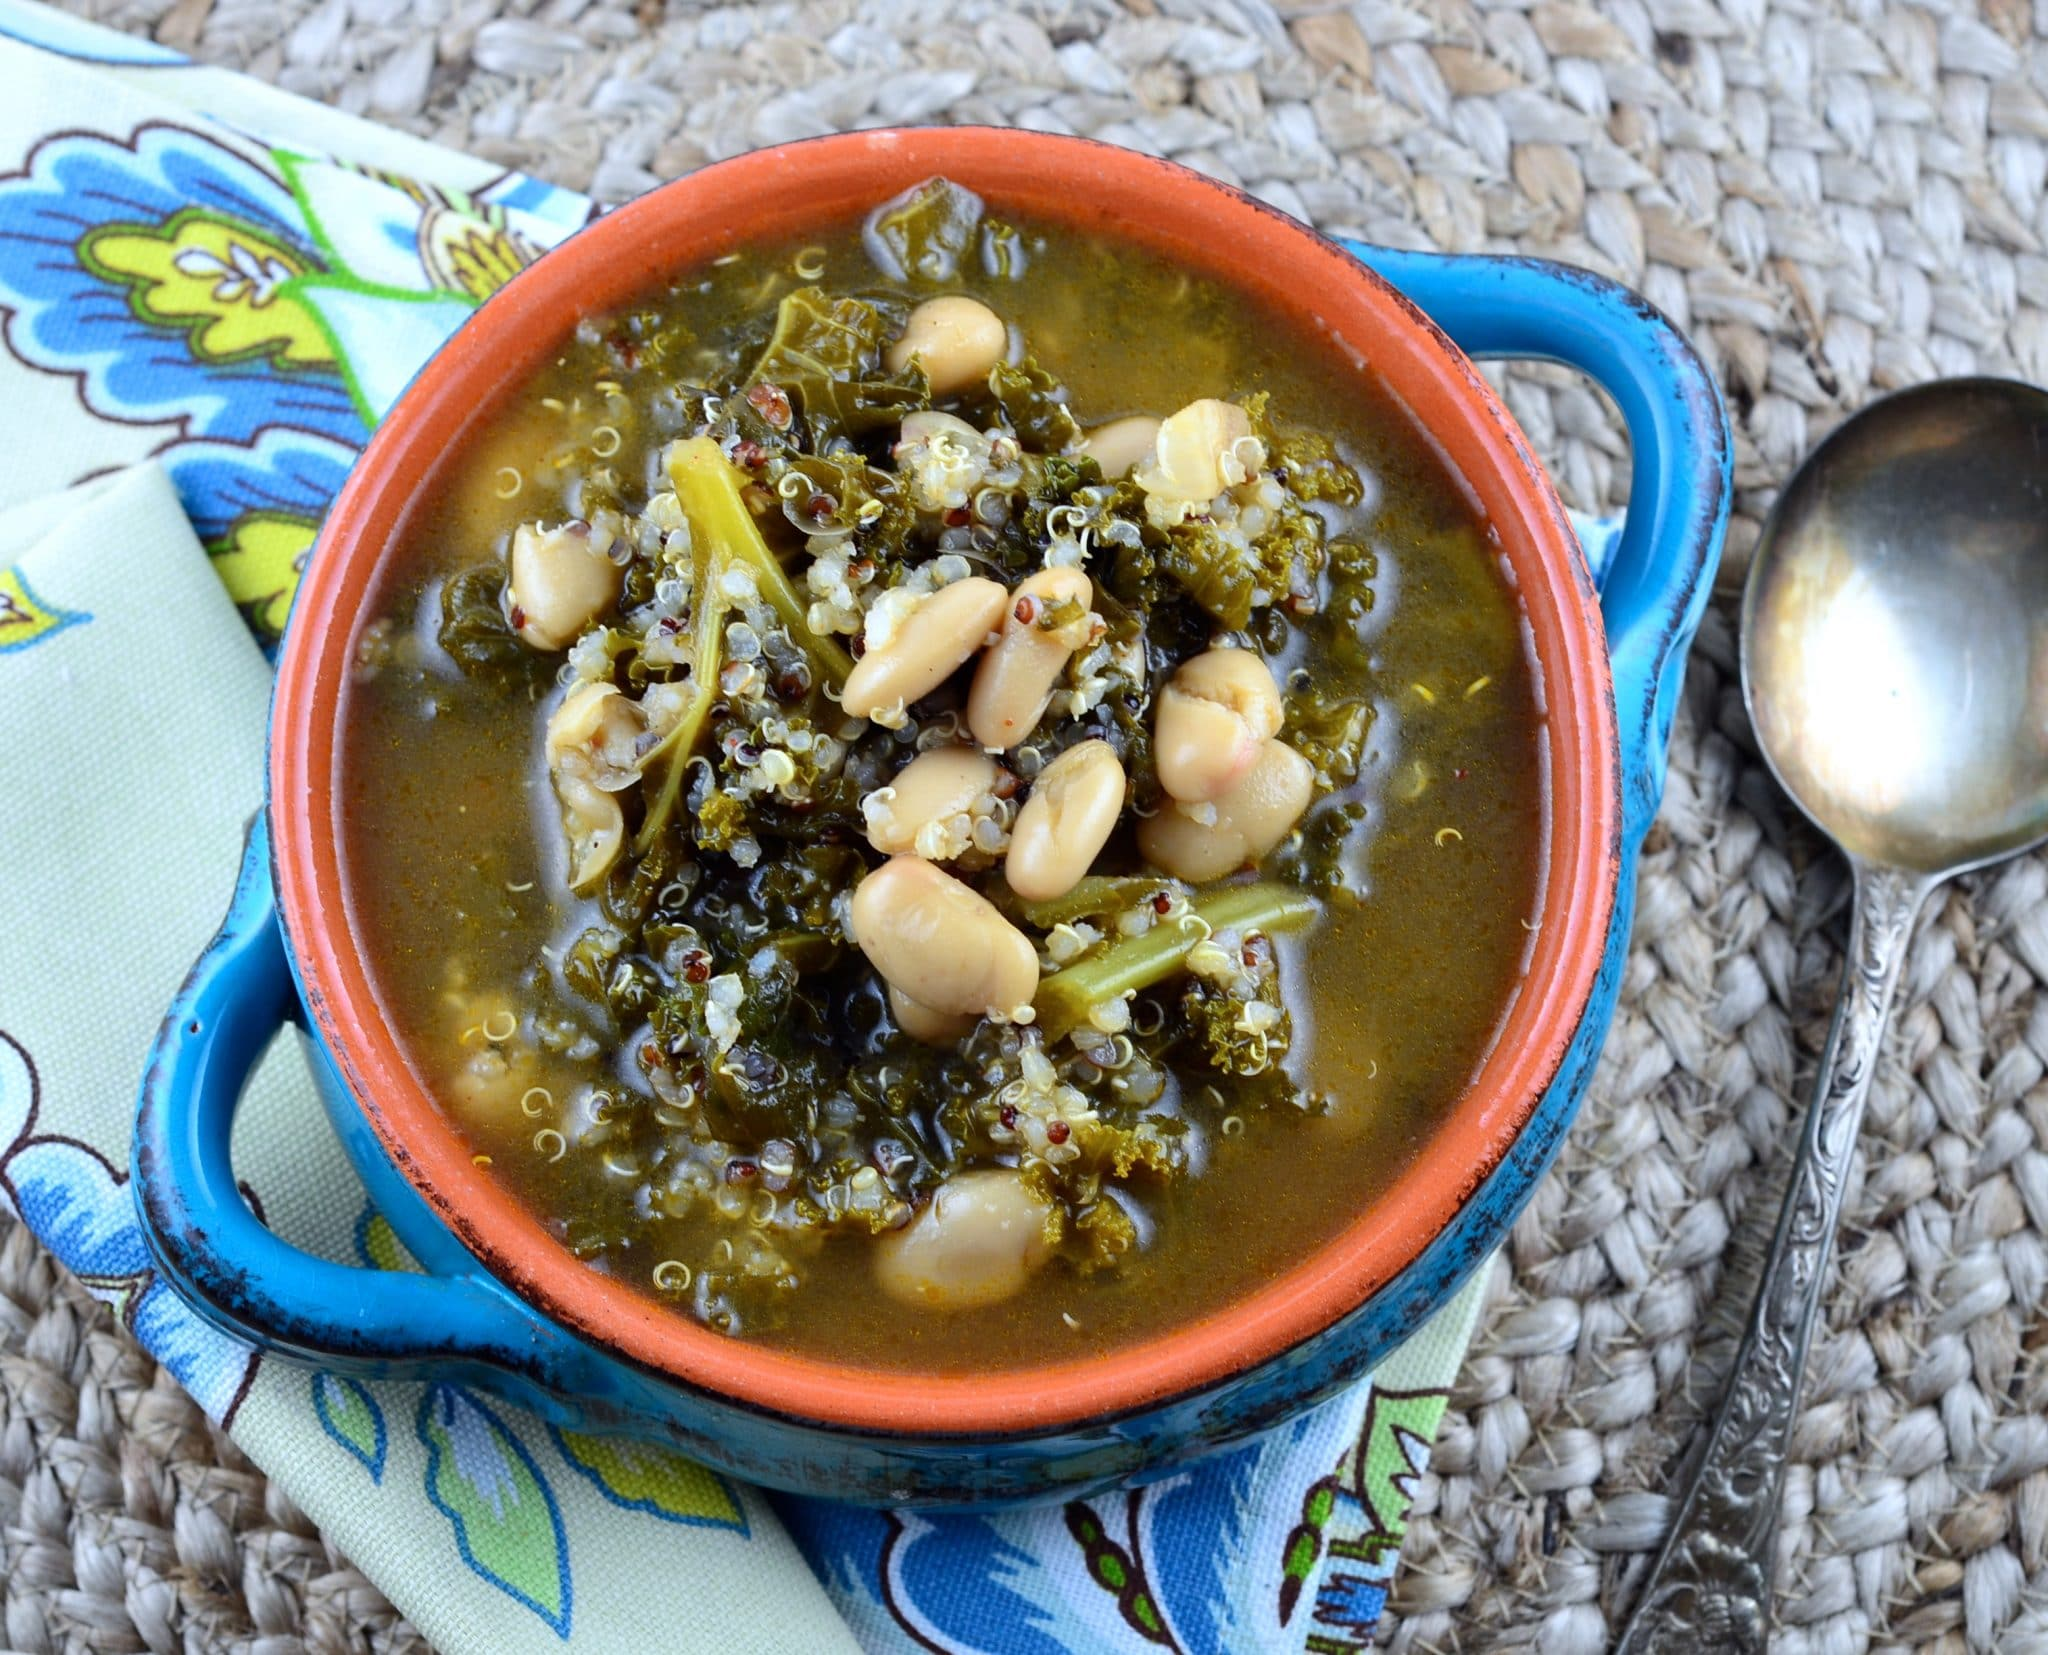 Meatless Monday - Kale & Cannellini Bean Soup - May I Have That Recipe